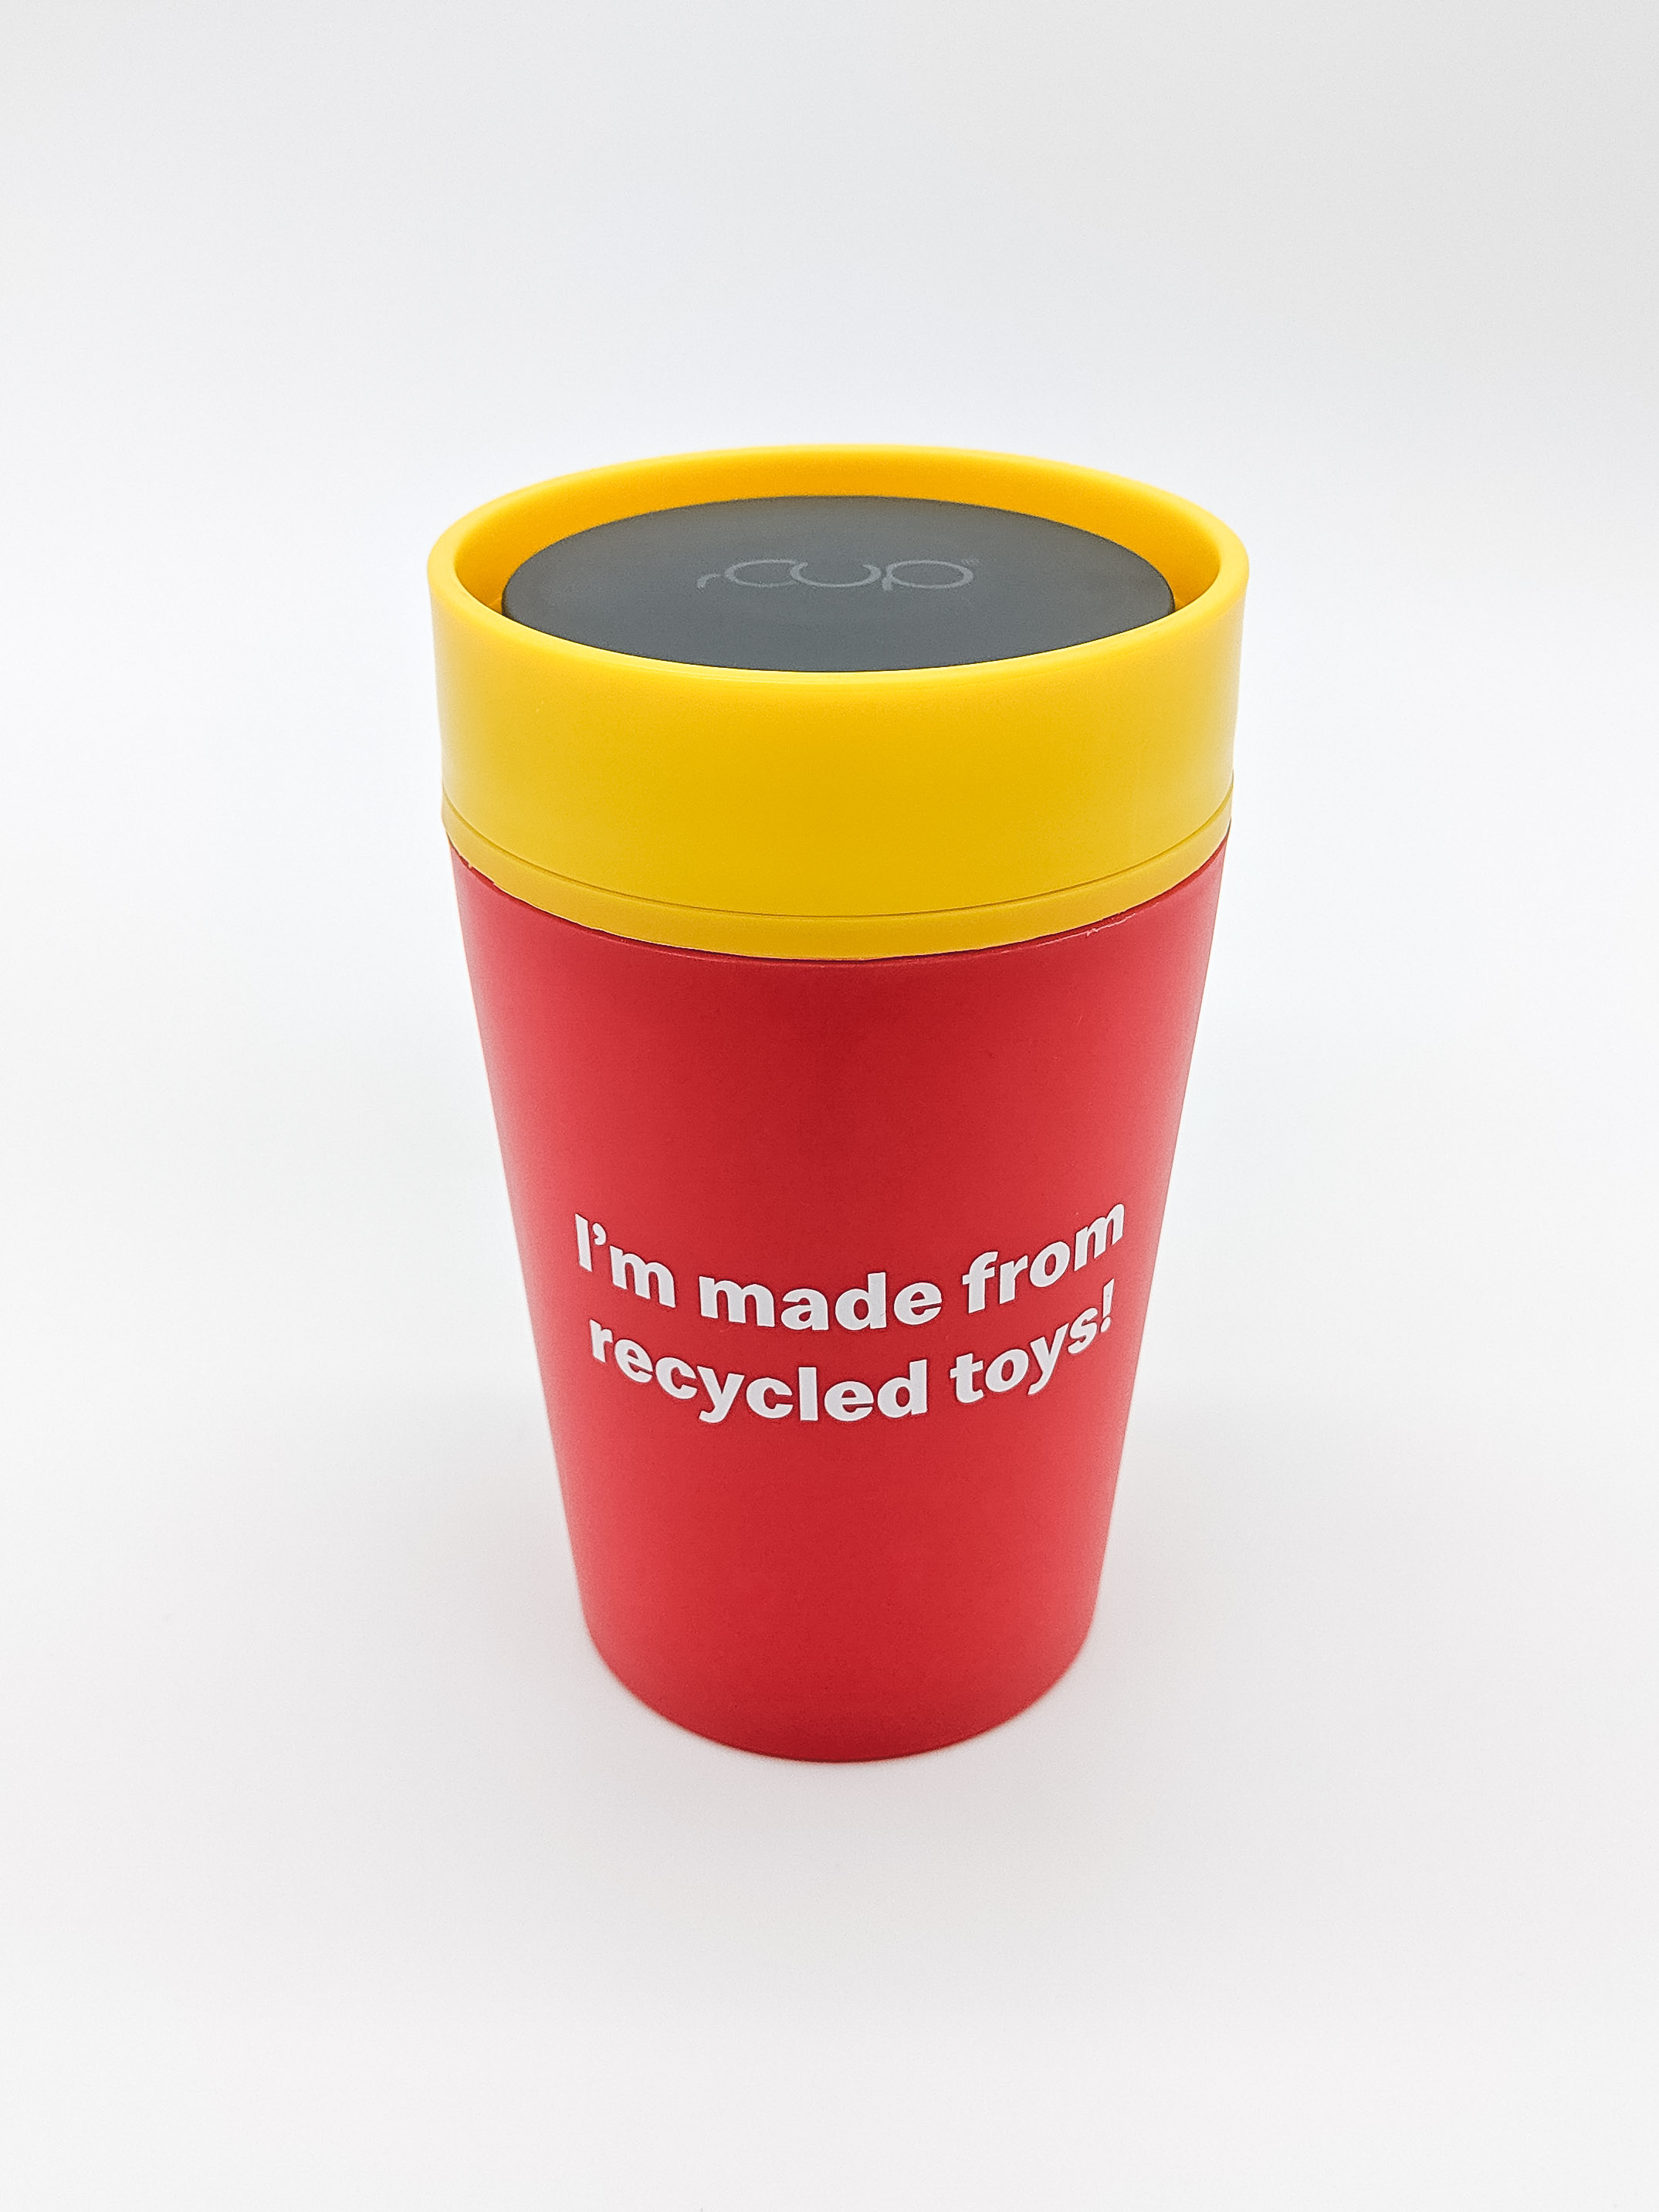 A reusable cup made from recycled toys. (McDonald's/PA)